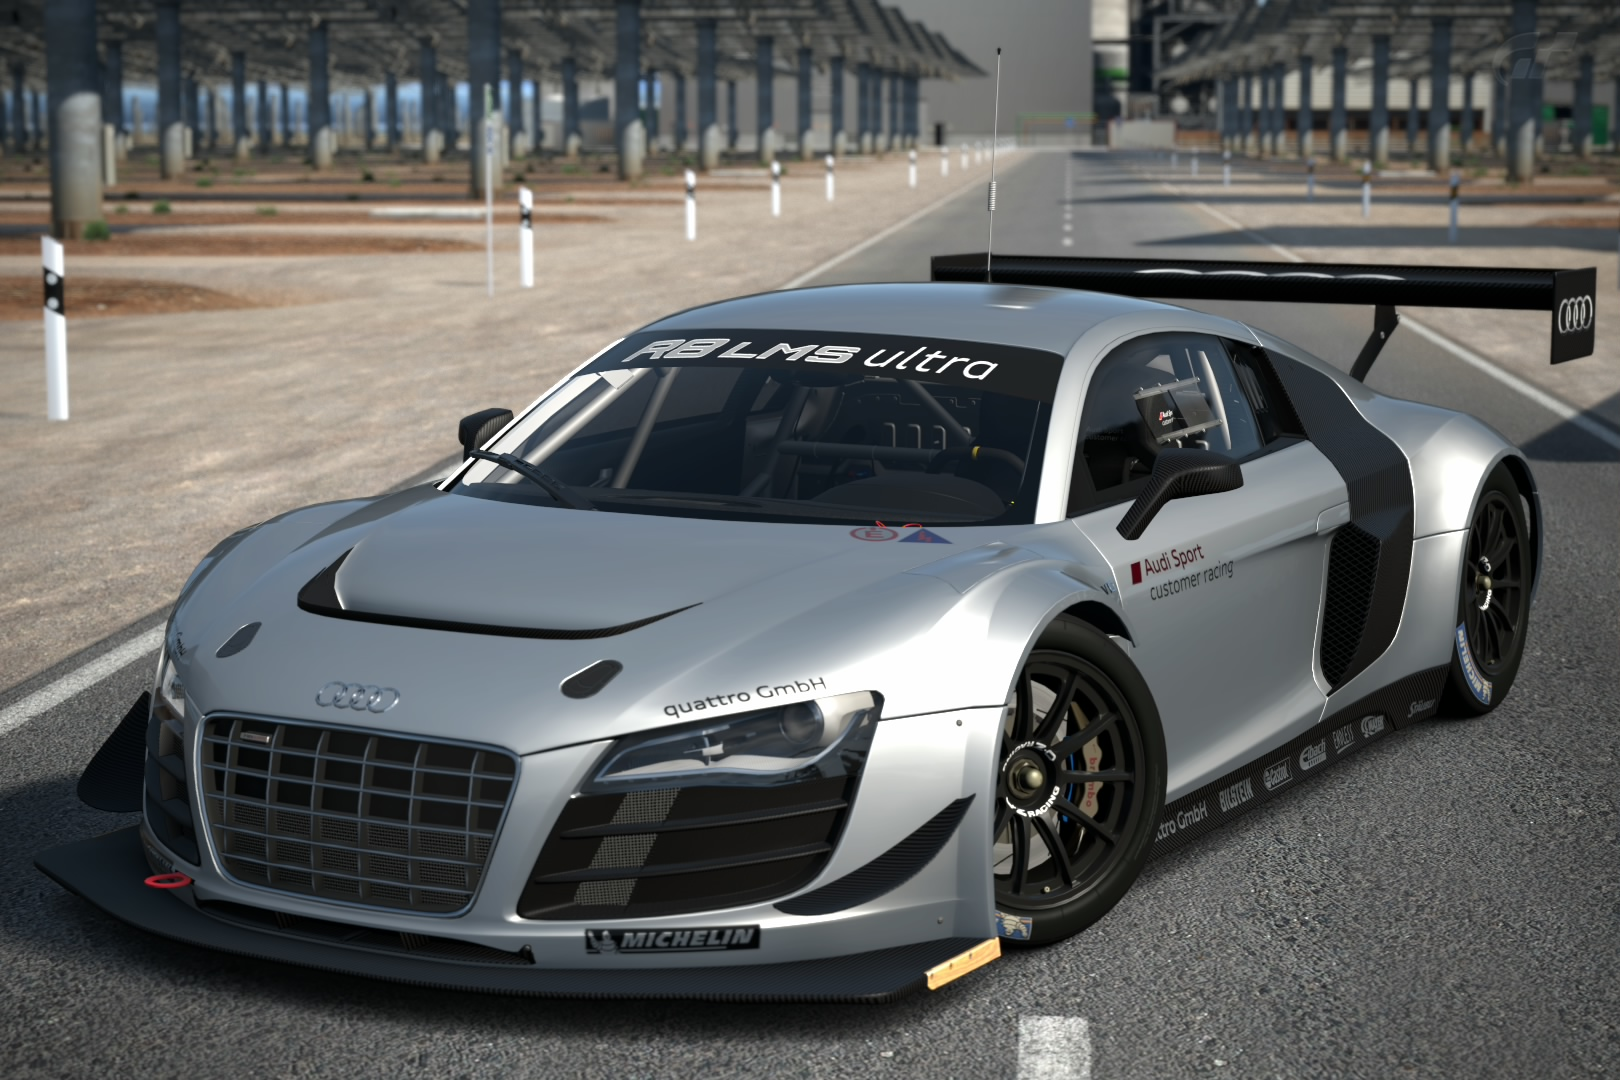 audi r8 lms ultra 39 12 gran turismo wiki fandom powered by wikia. Black Bedroom Furniture Sets. Home Design Ideas